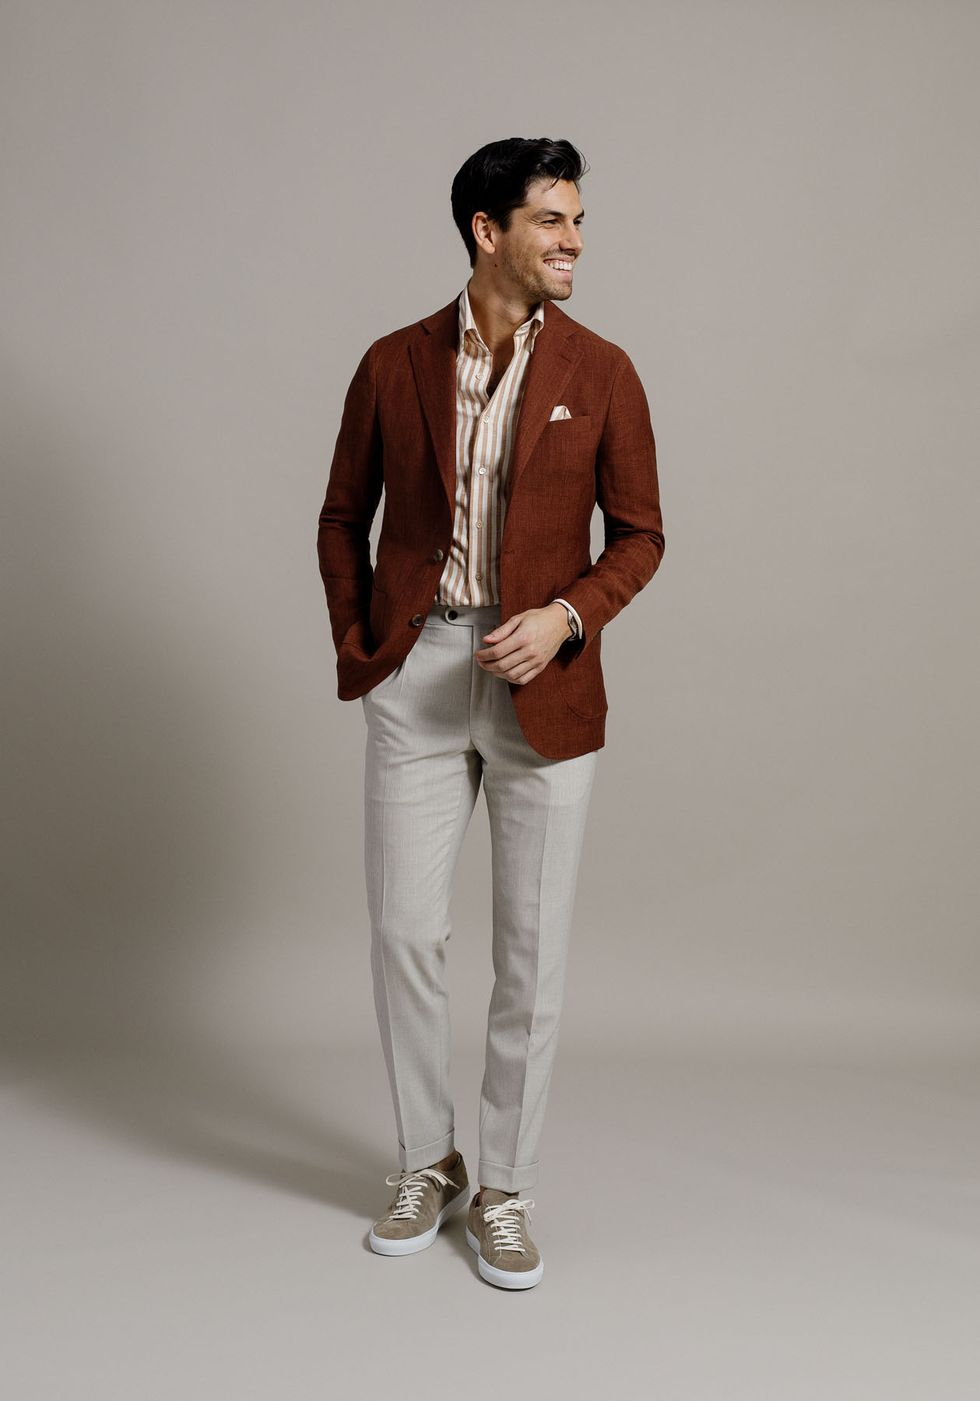 Blugiallo Spring/Summer 2018 - The Soft Tailored Lookbook